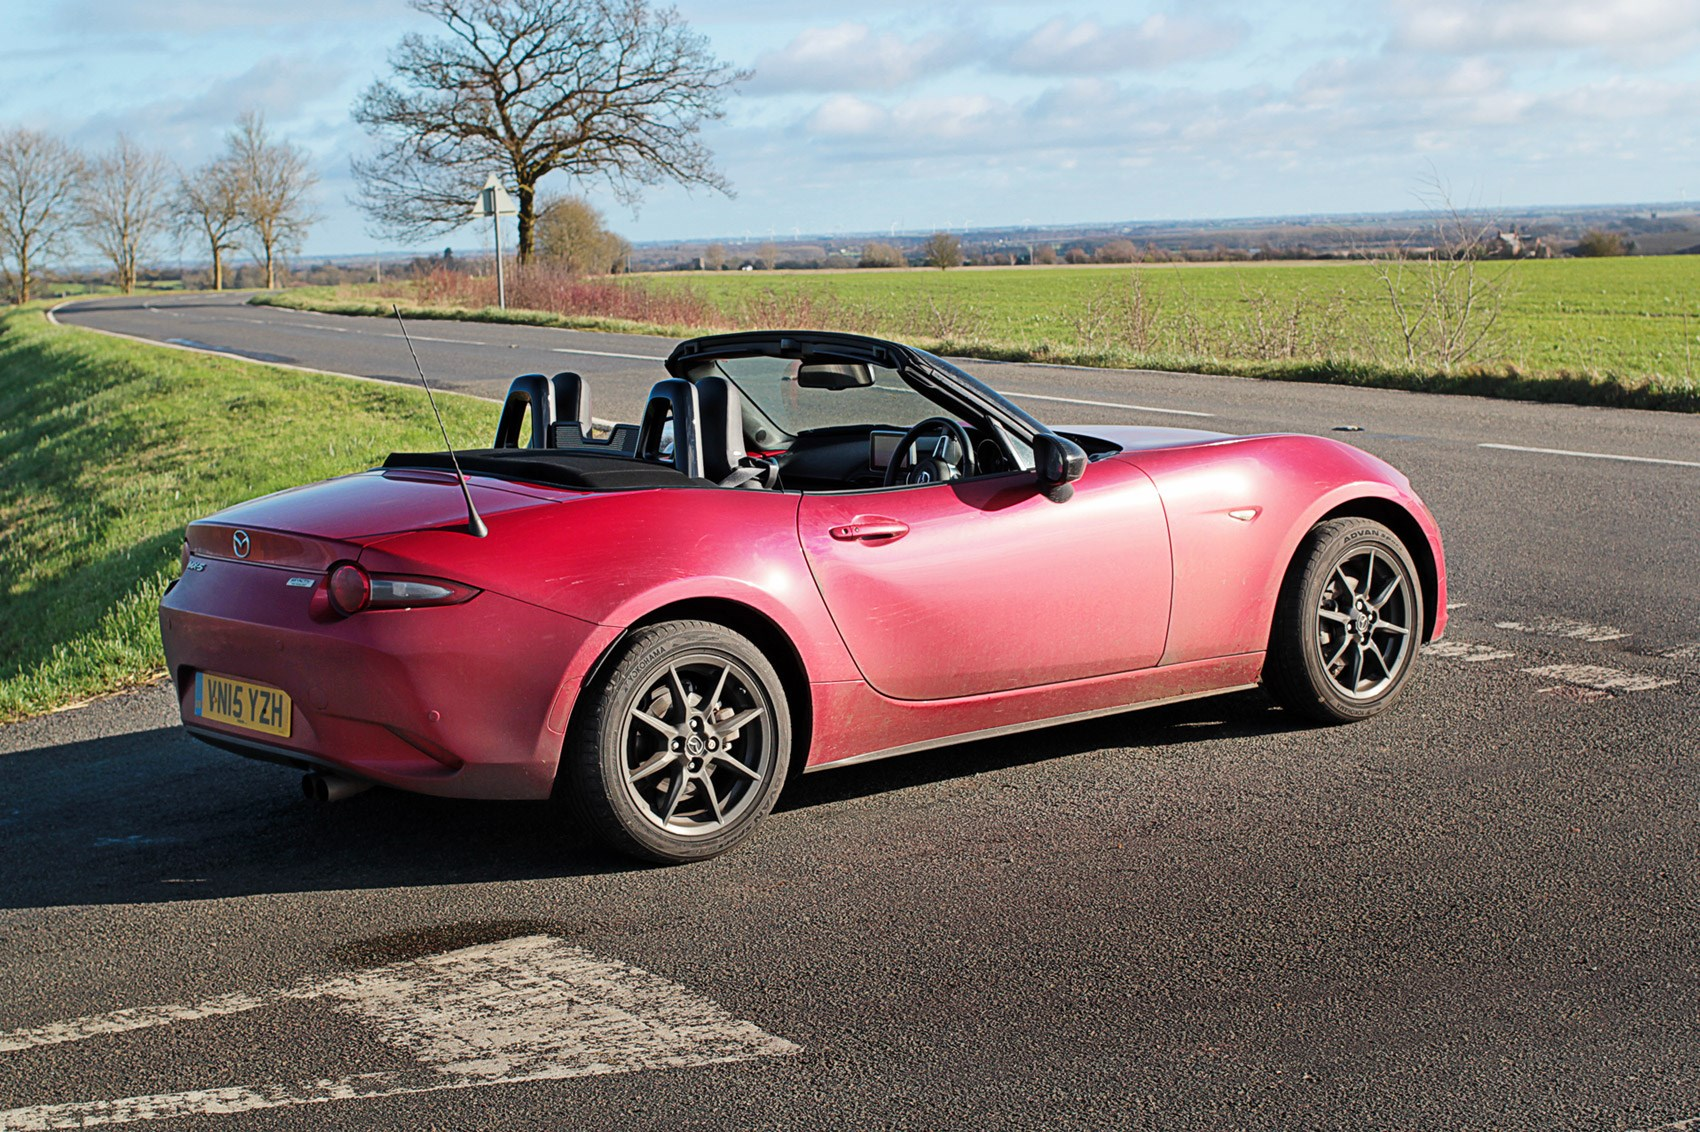 mazda mx 5 1 5 sport nav 2016 long term test review by car magazine. Black Bedroom Furniture Sets. Home Design Ideas